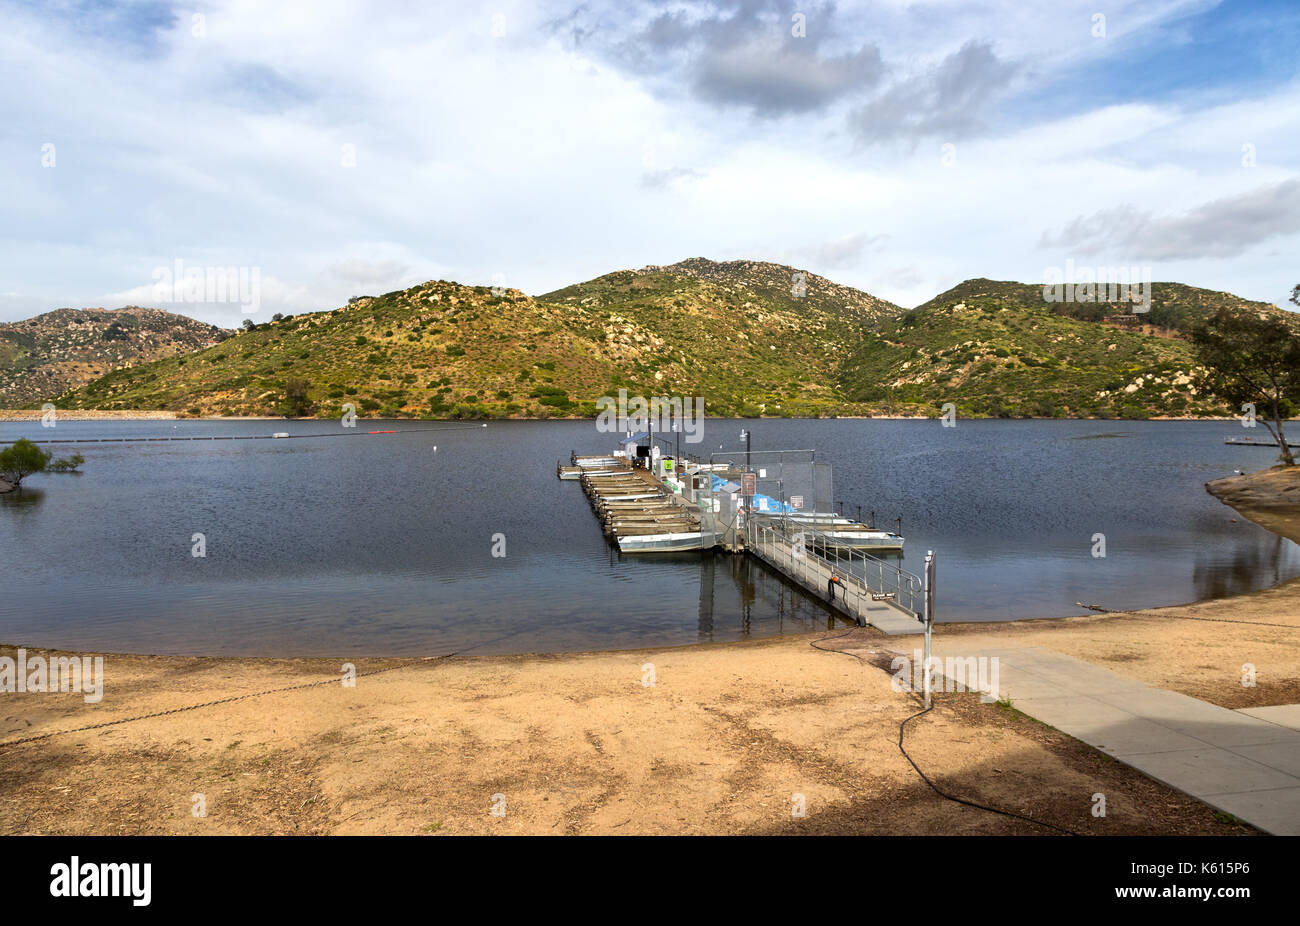 Lake Poway Fishing Dock Recreational Facility and Landscape Inland Mountain View in East San Diego County, California, United States - Stock Image